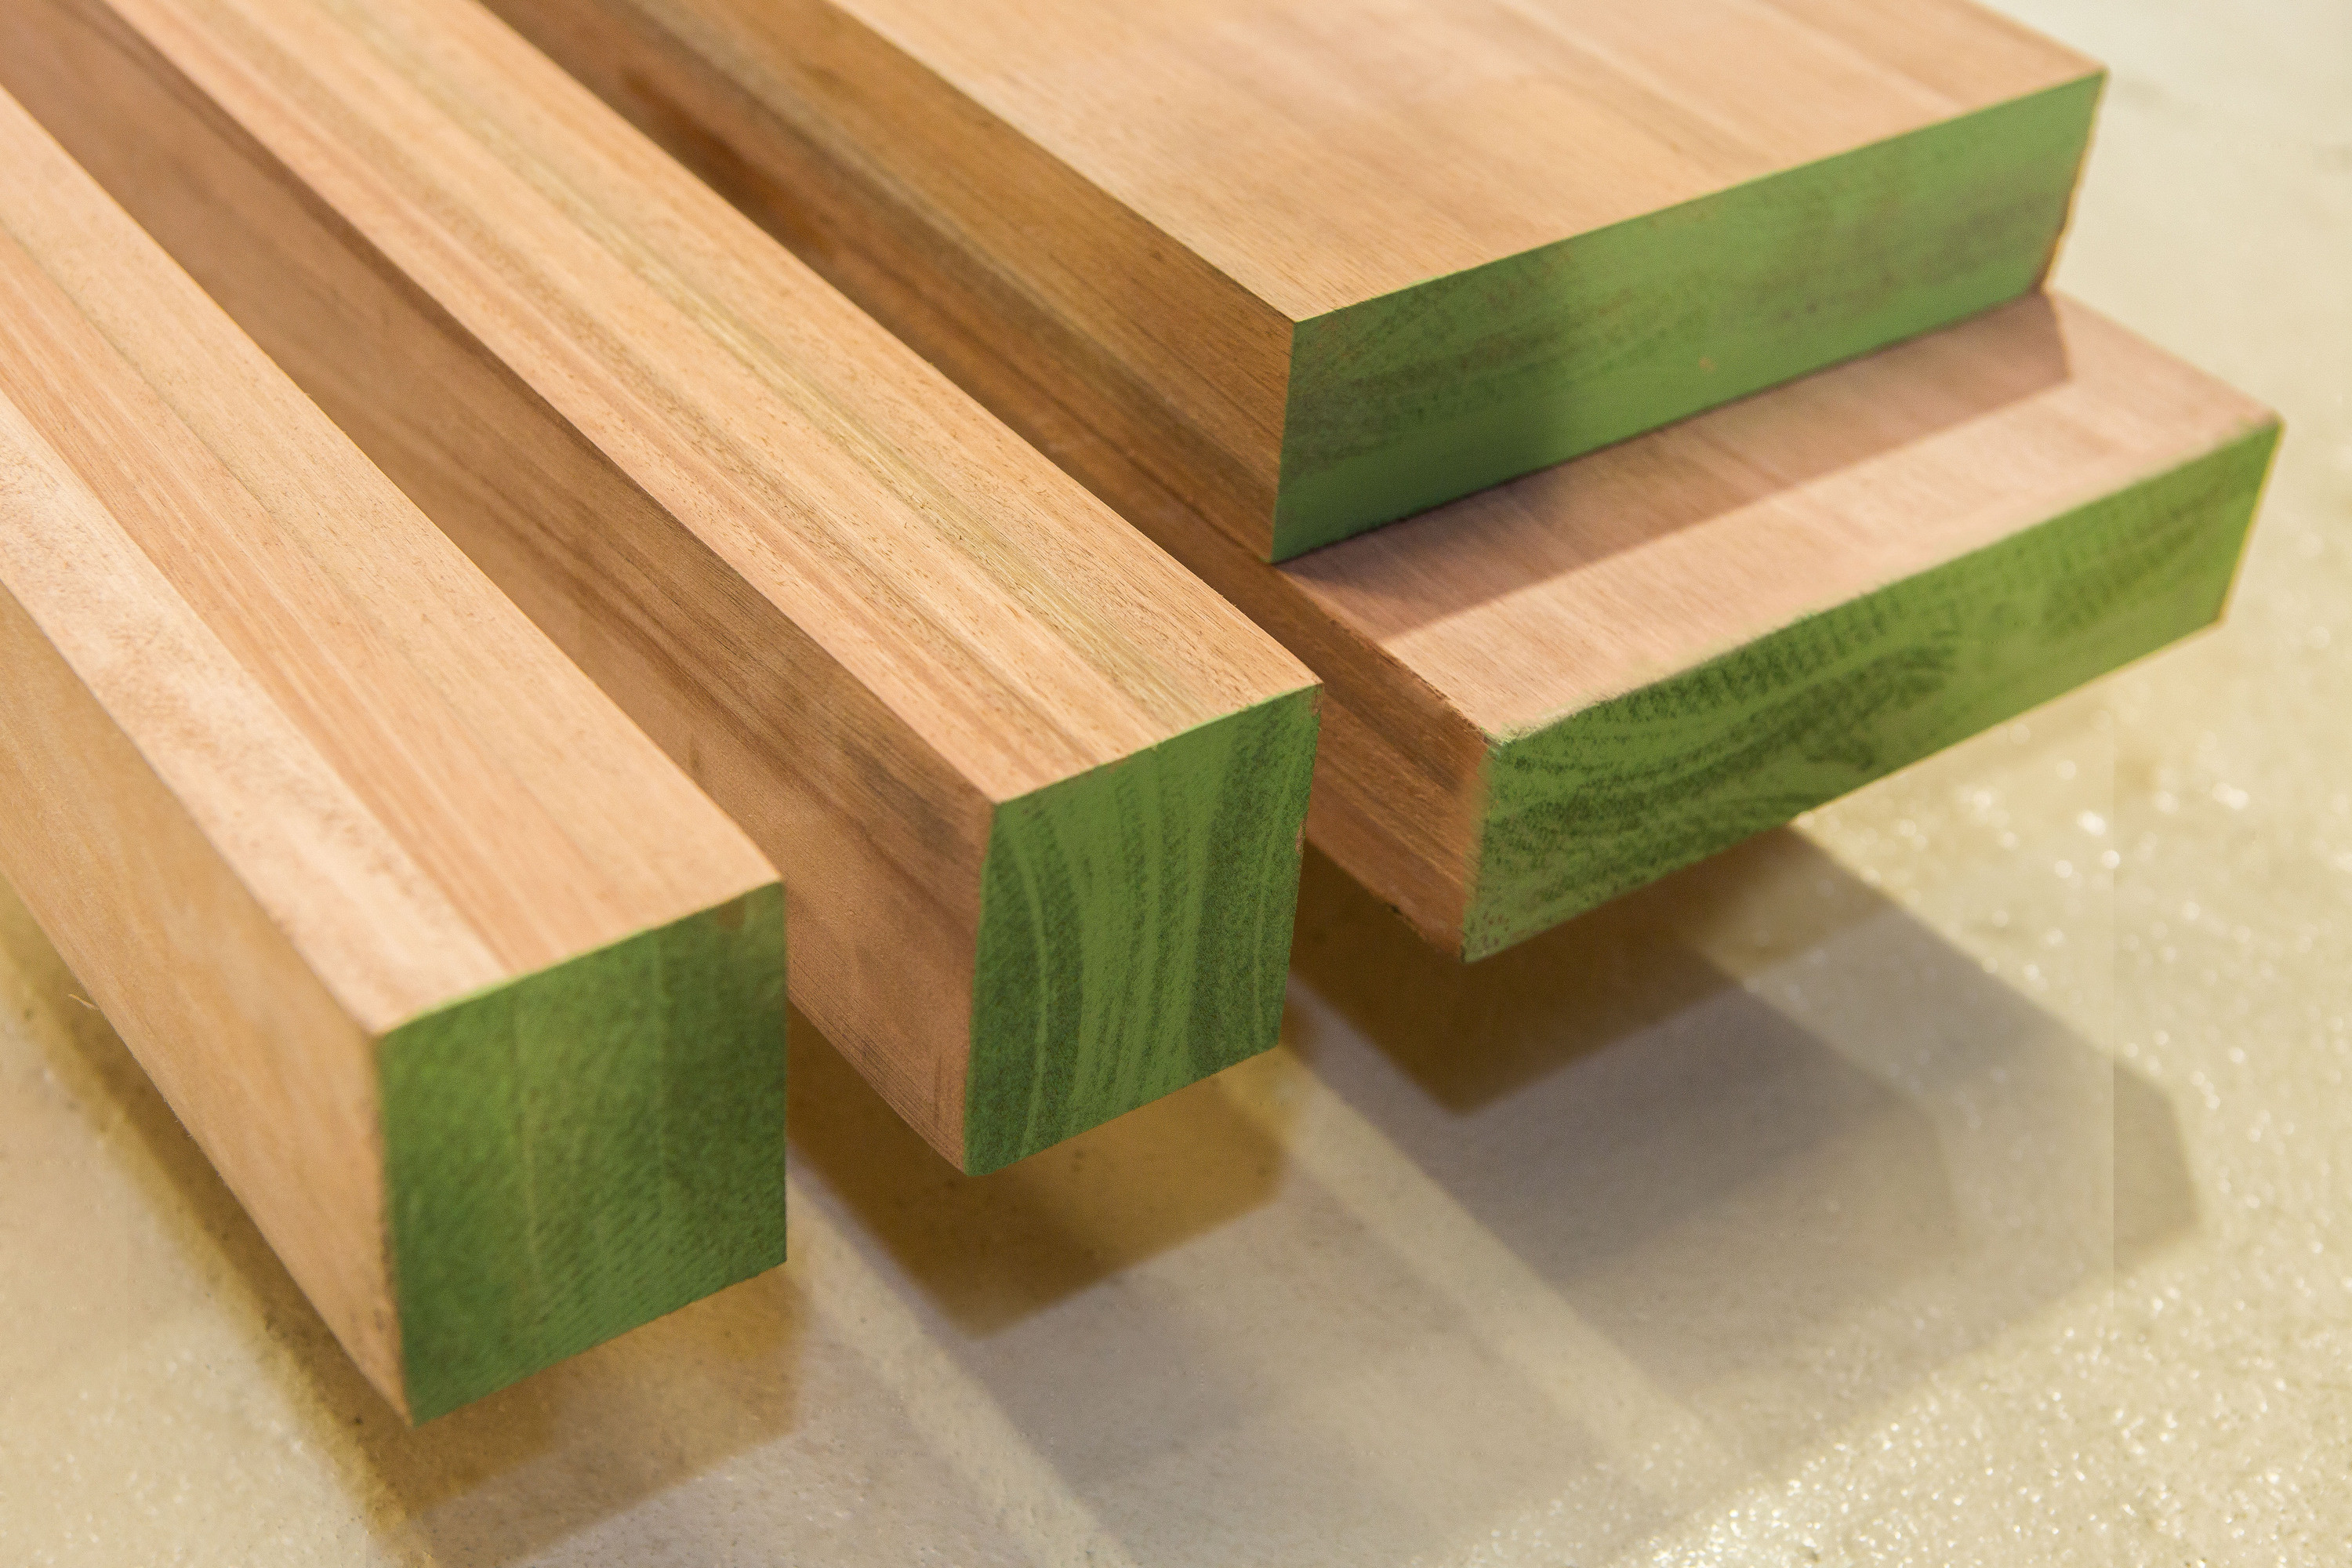 eucalyptus hardwood flooring reviews of trada architecture design innovation inside james latham is now offering the rolls royce of eucalyptus through all eight of its timber depots with the arrival of grandis 690 a woodex engineered